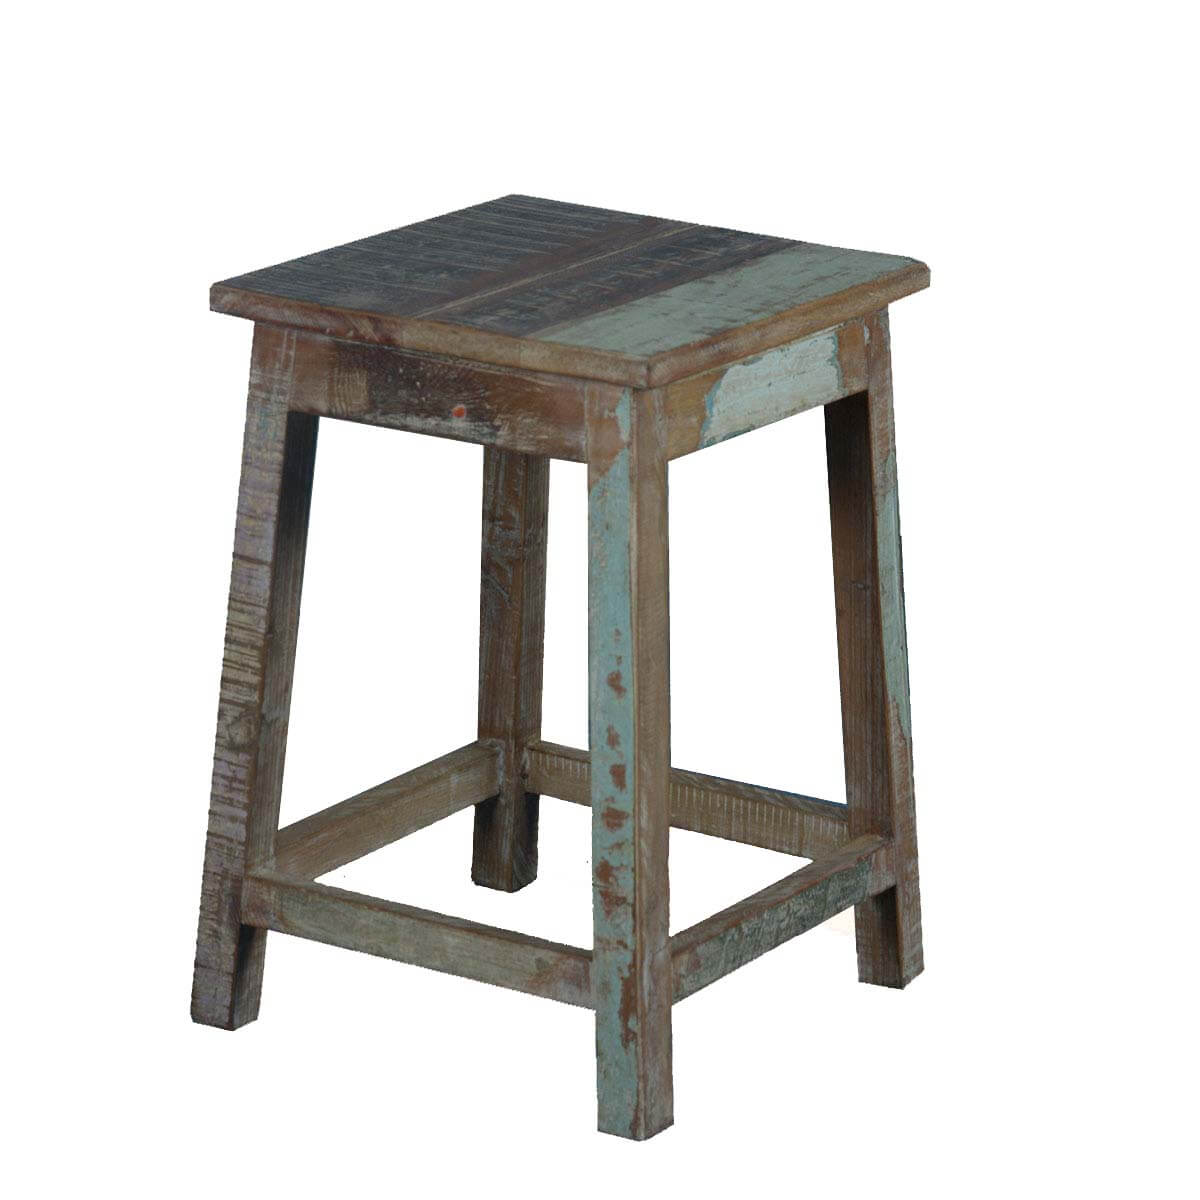 Reclaimed Wood End Tables ~ Square rustic reclaimed wood quot pedestal end table stool